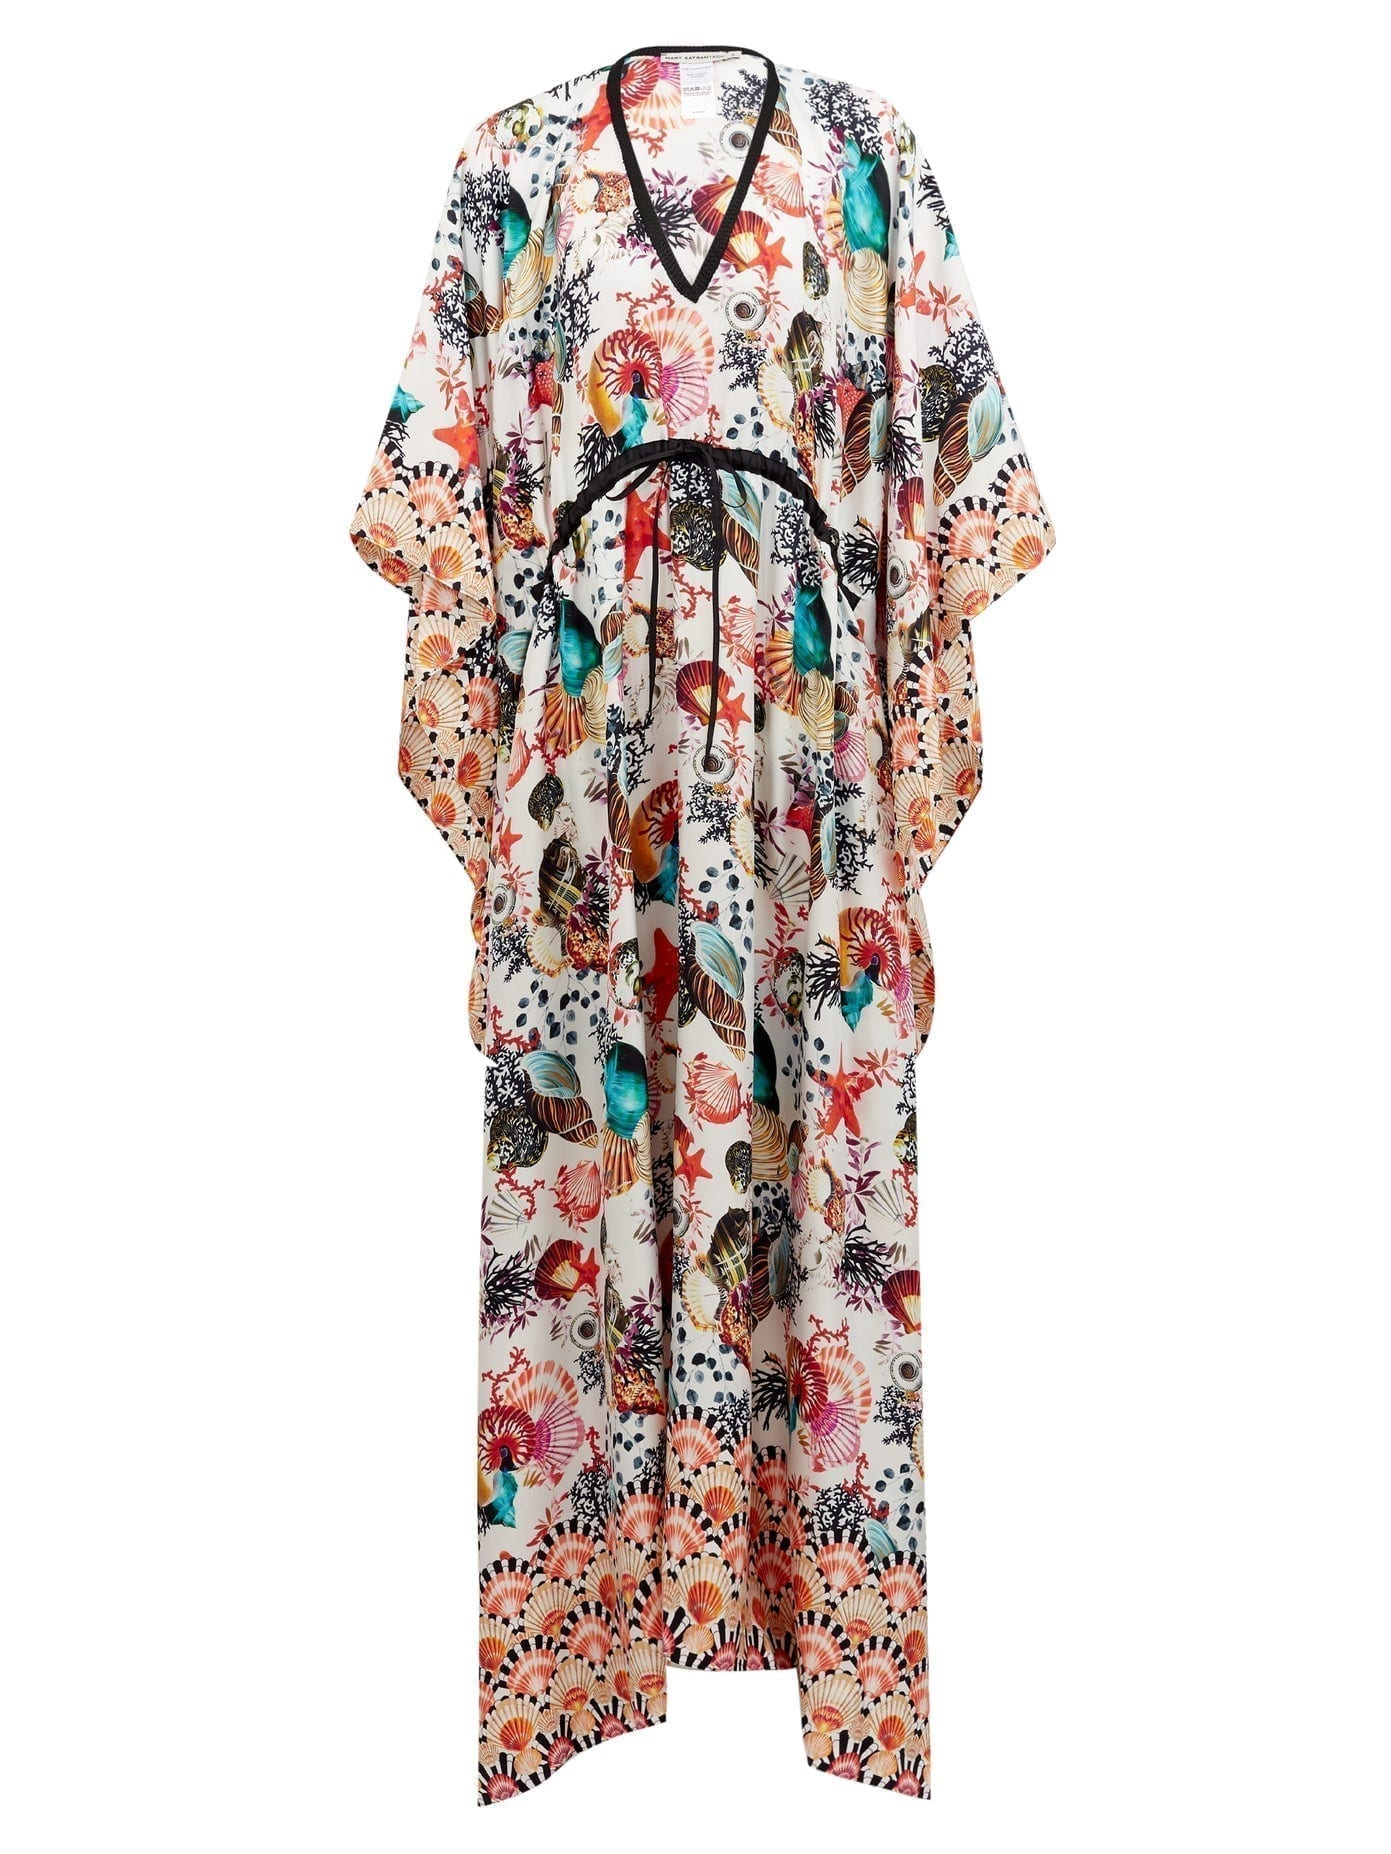 MARY MARE St. Tropez Shell-print Silk Kaftan Dress